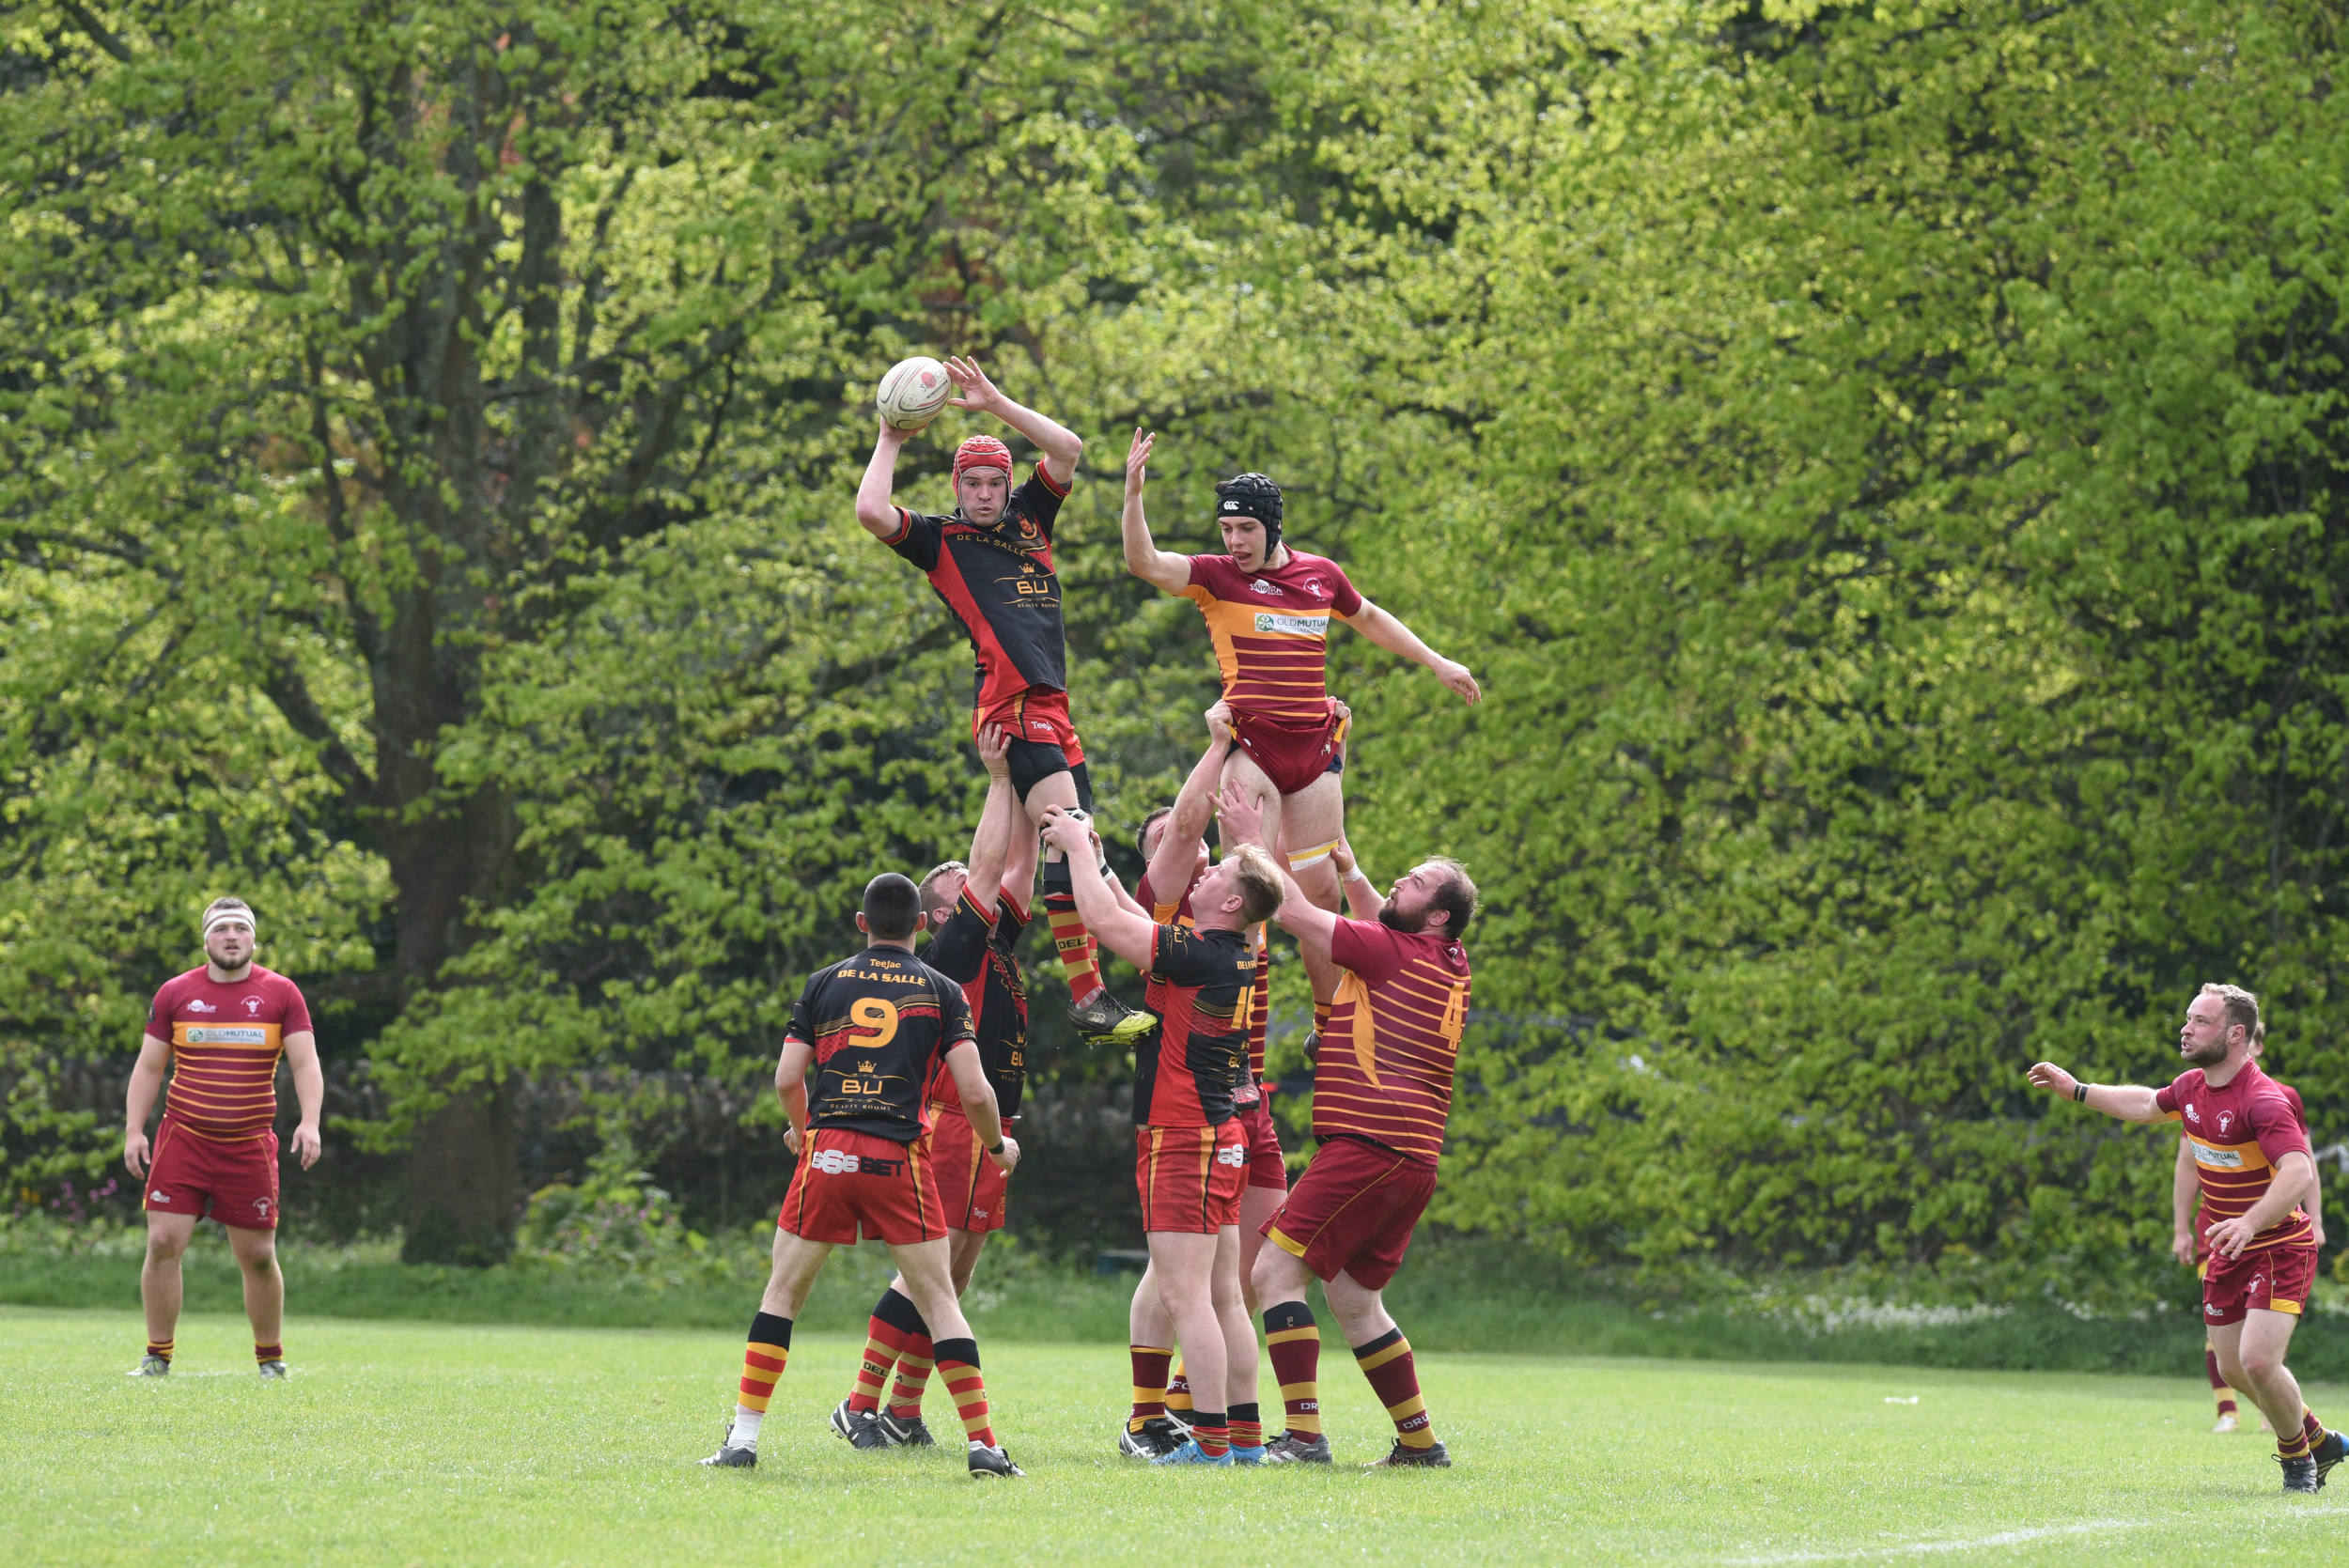 Douglas Rugby Club beats De La Salle in a promotion play-off